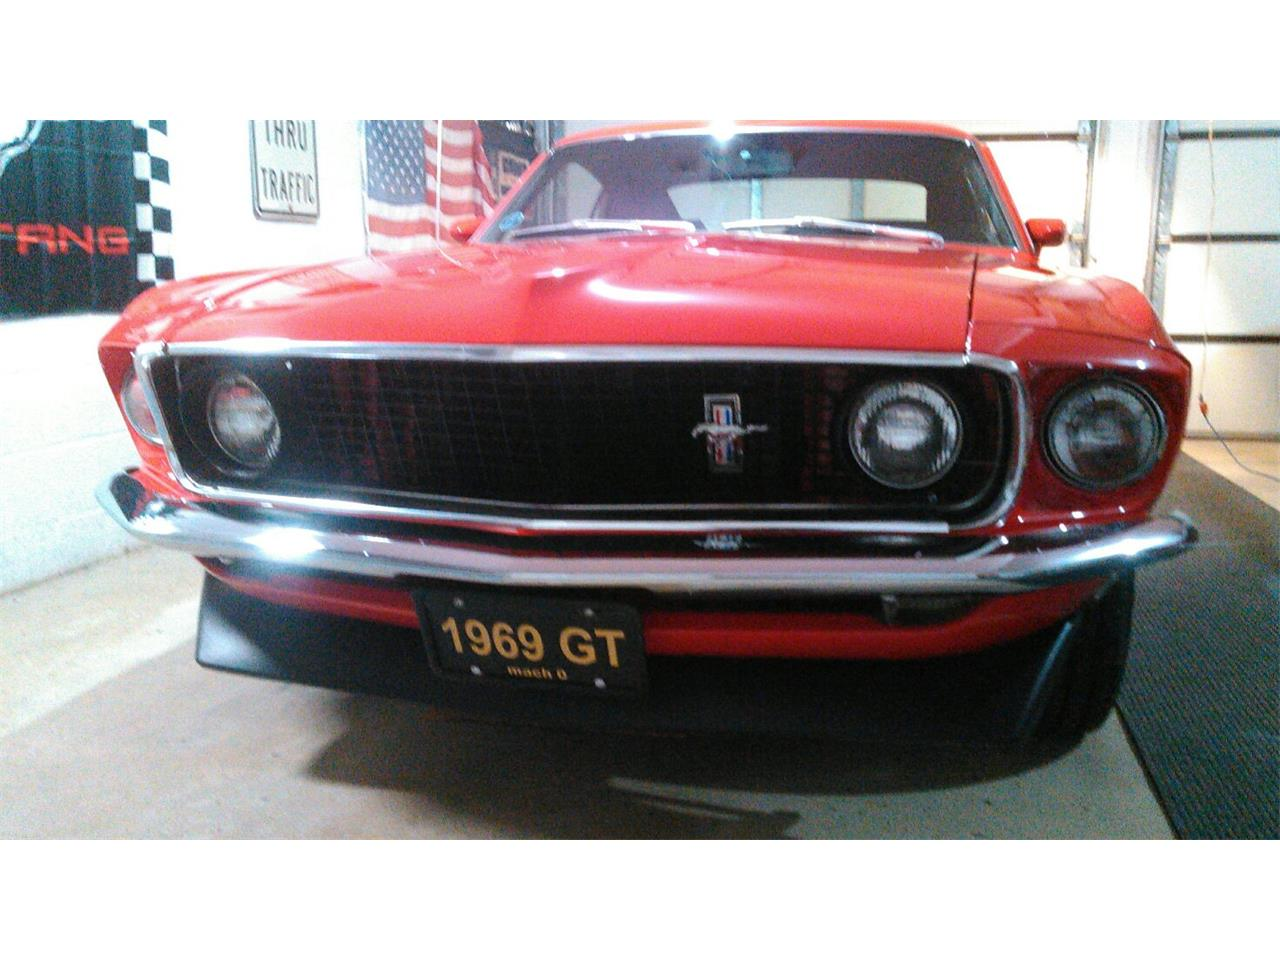 Large Picture of Classic '69 Mustang GT located in Sauk Centre Minnesota - $34,950.00 Offered by a Private Seller - P3Q3